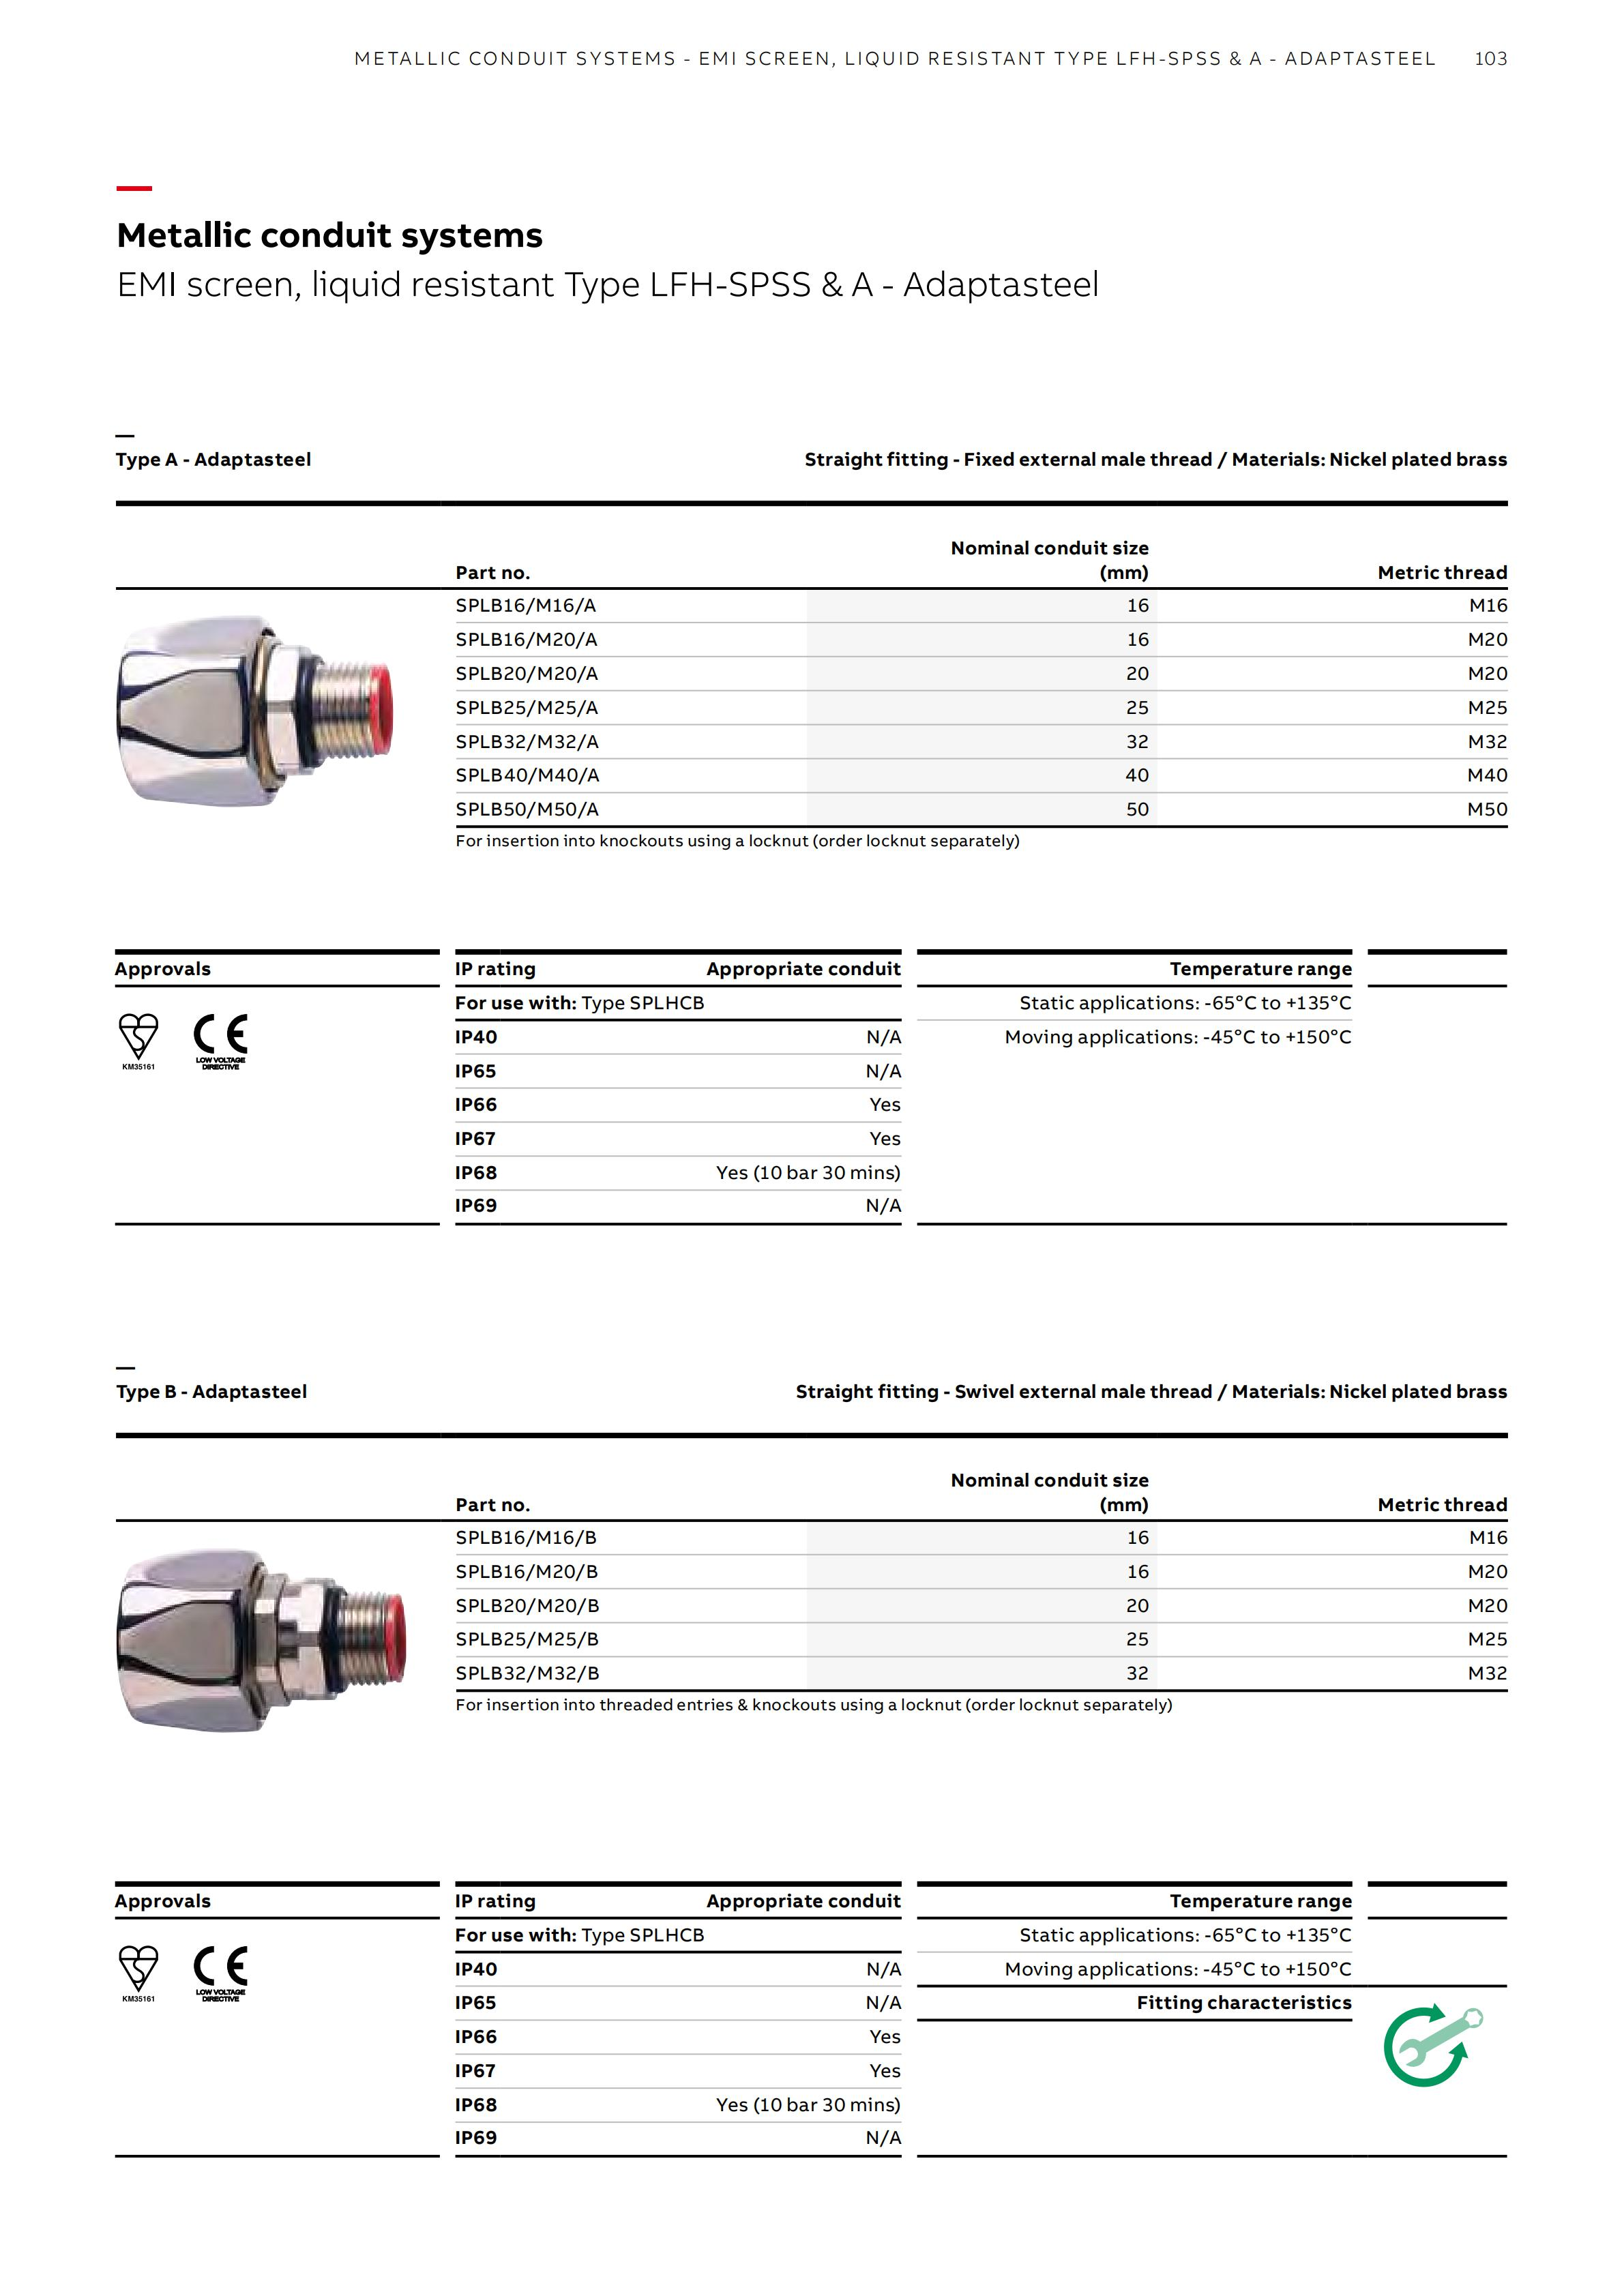 ADAPTAFLEX ABB CATALOGUE ENGLISH (Aug 18)_103.jpg